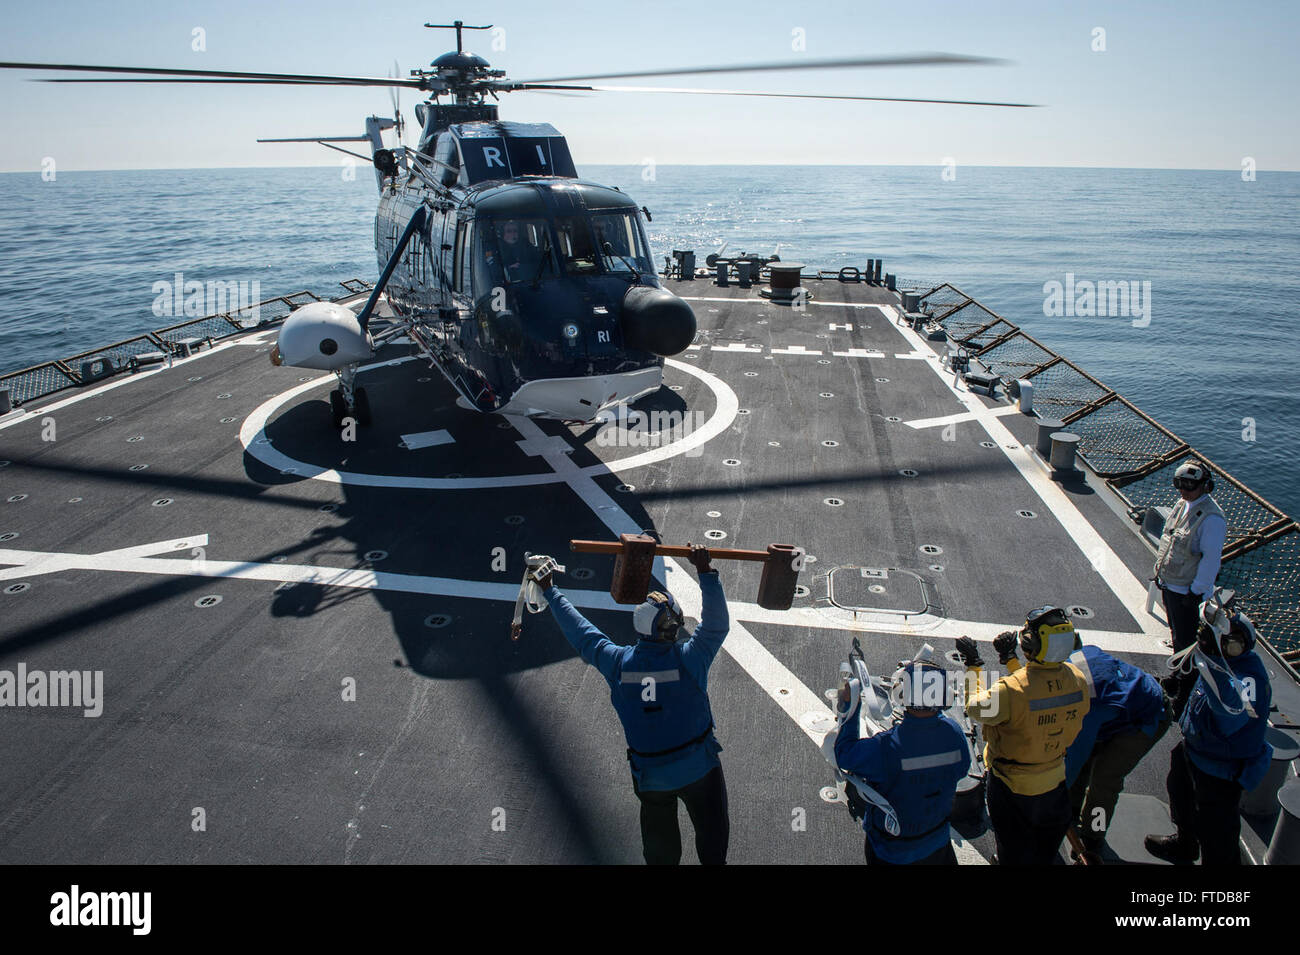 150406-N-JN664-093 ATLANTIC OCEAN (April 6, 2015) USS Donald Cook (DDG 75) concludes flight operations with a Sikorsky Stock Photo